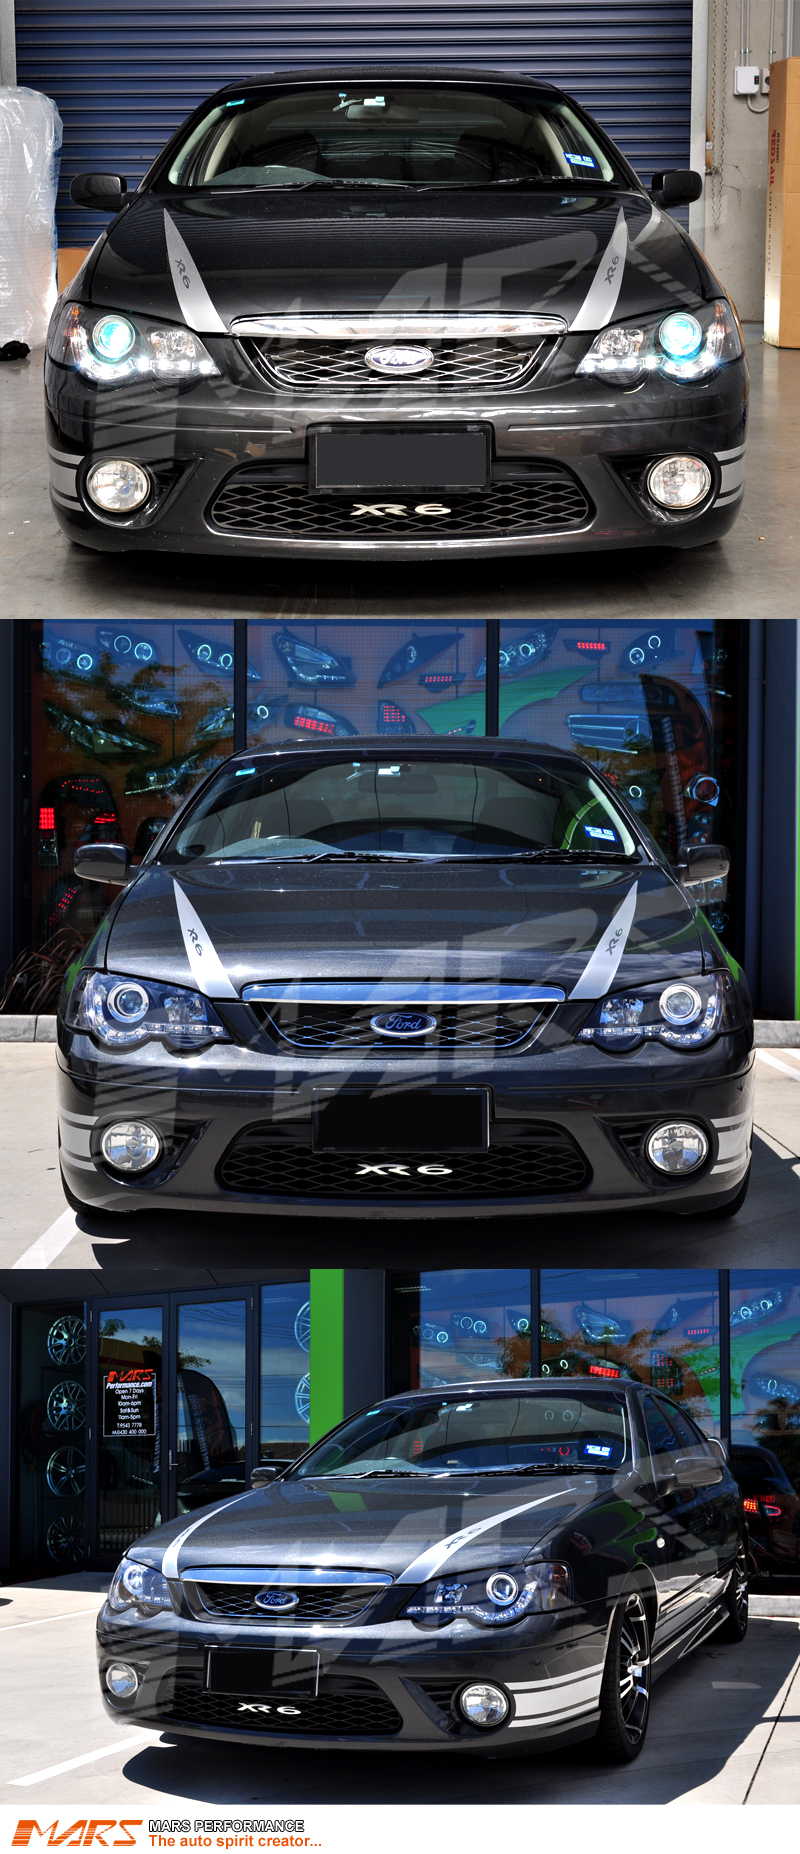 Black Drl Led Head Lights For Ford Falcon Fpv Ba Bf Sedan Ute Xr6 Wiring Diagram These Have Been Specially Designed And Made As Close To Match Factory Standard They Will Replace Your Original Directly